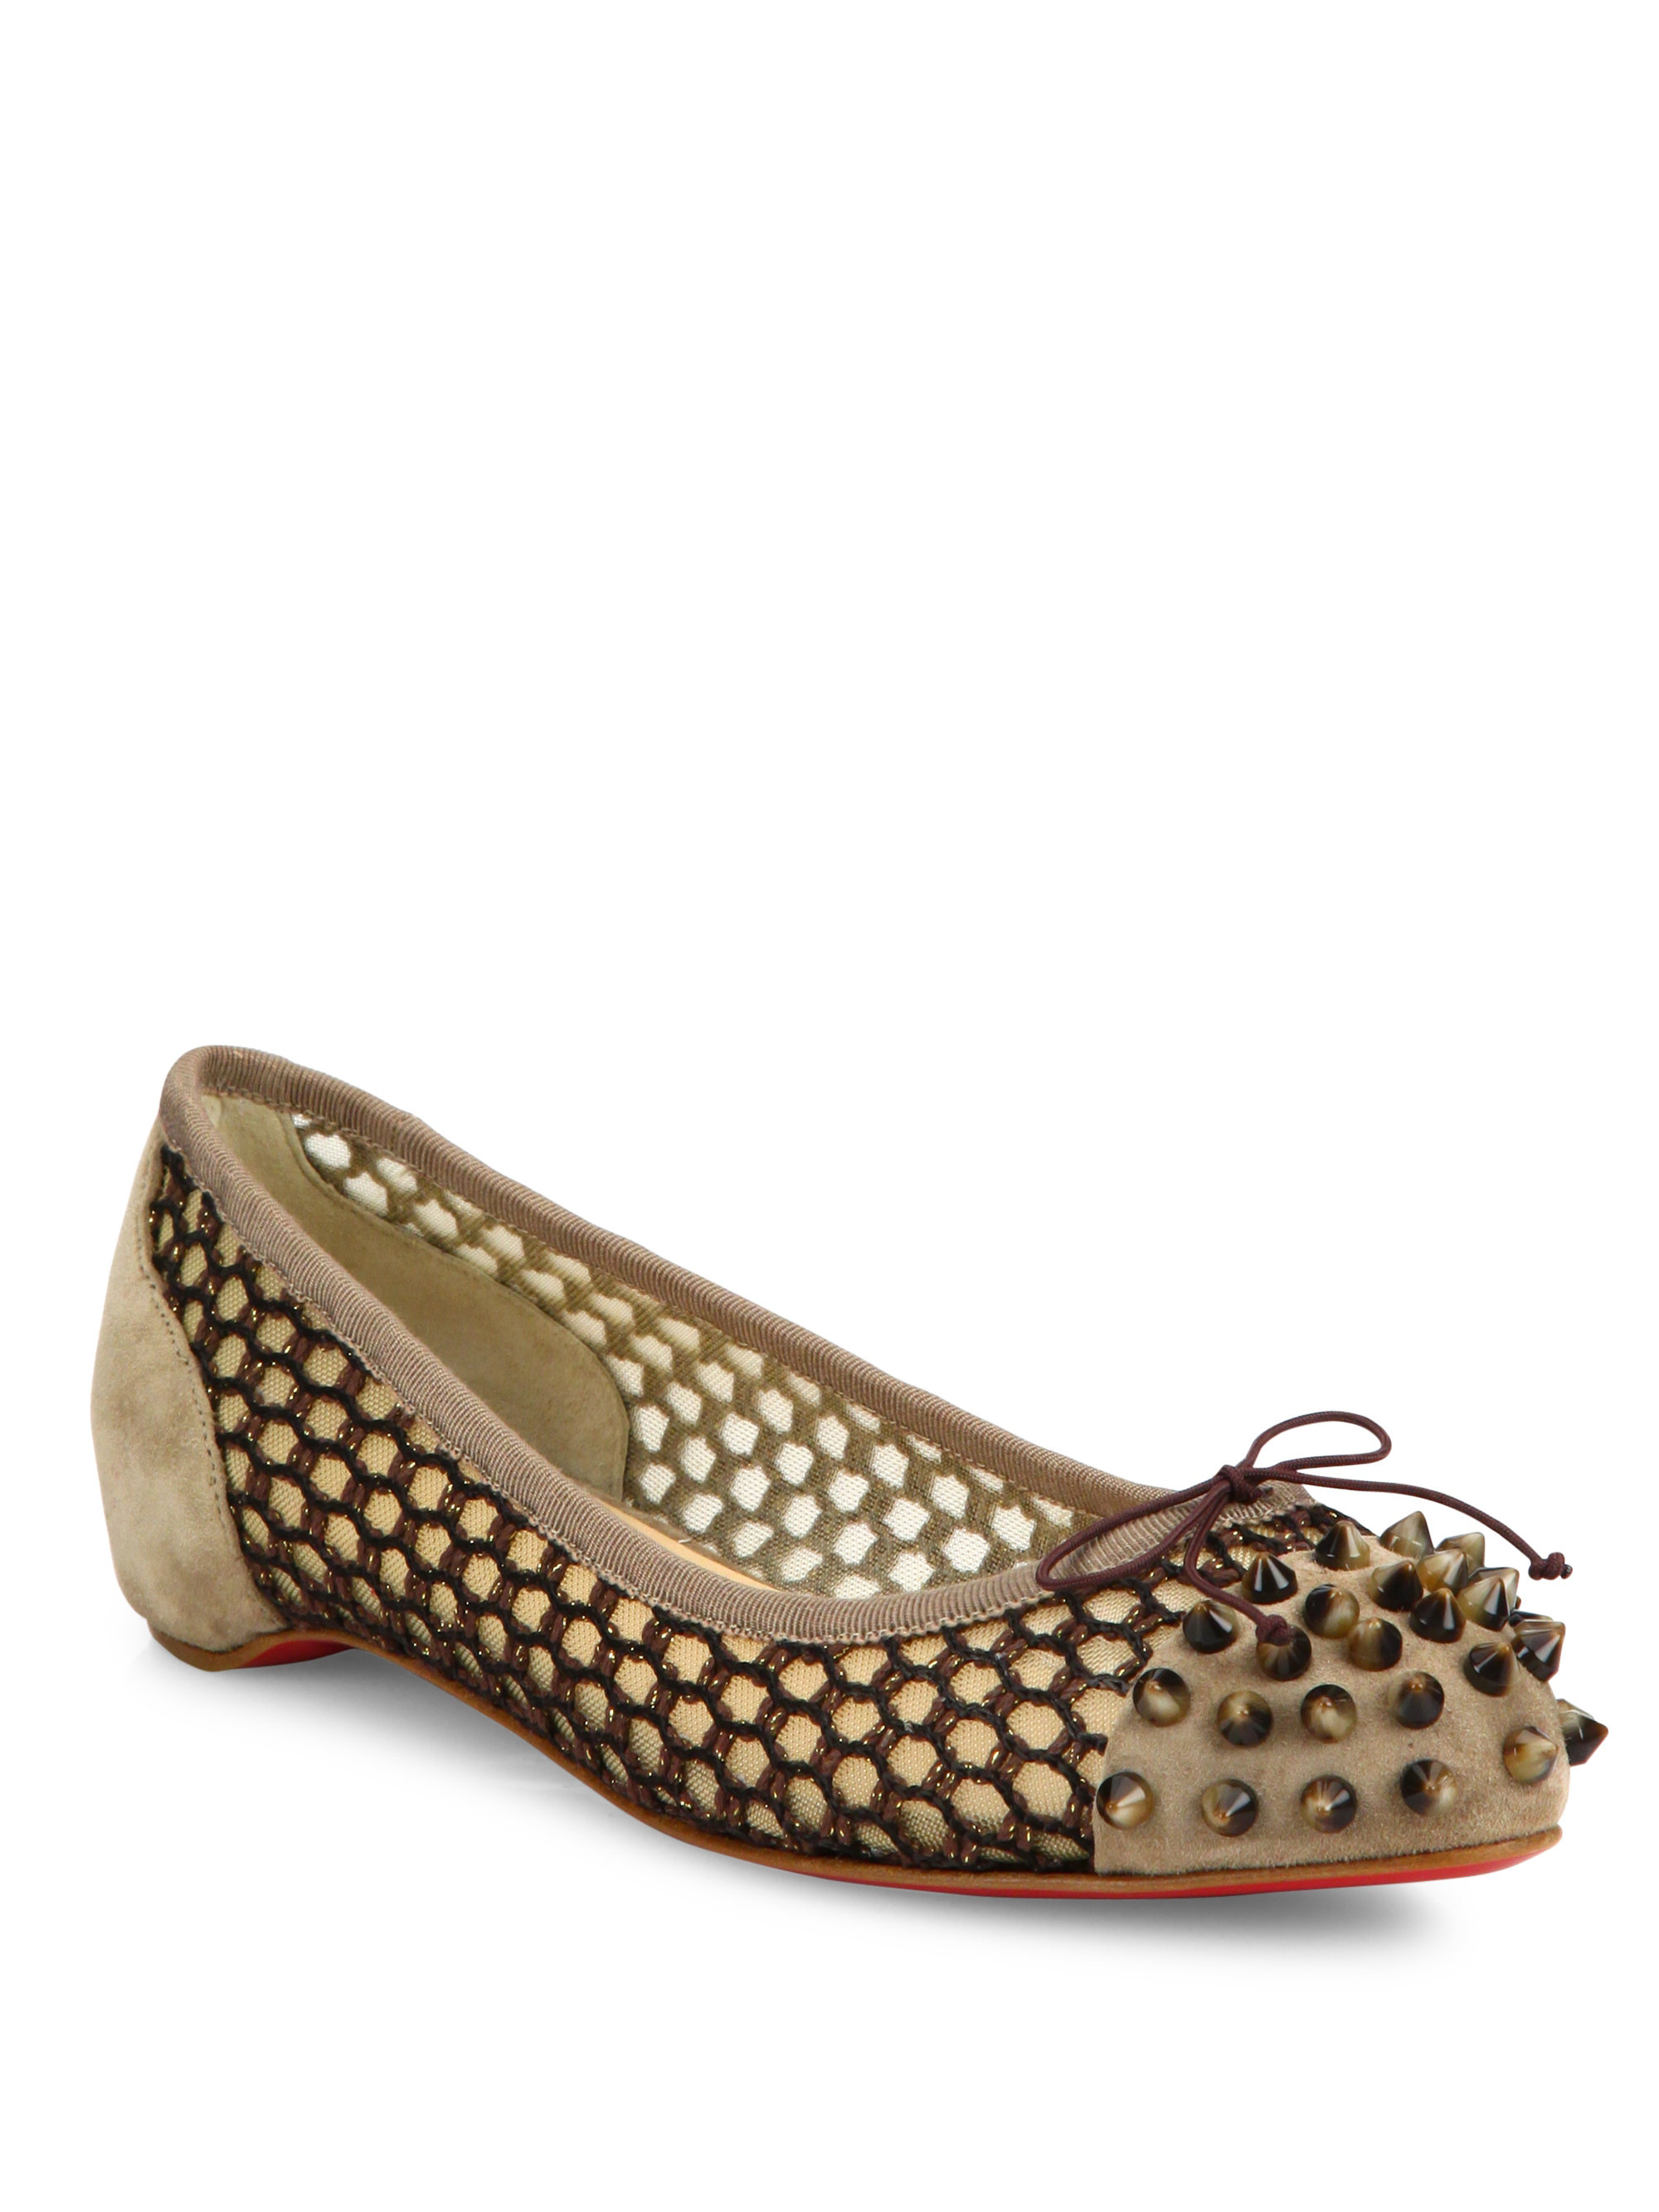 black spiked christian louboutin heels - Christian louboutin Mix Spiked Suede & Knotted Mesh Flats in Beige ...